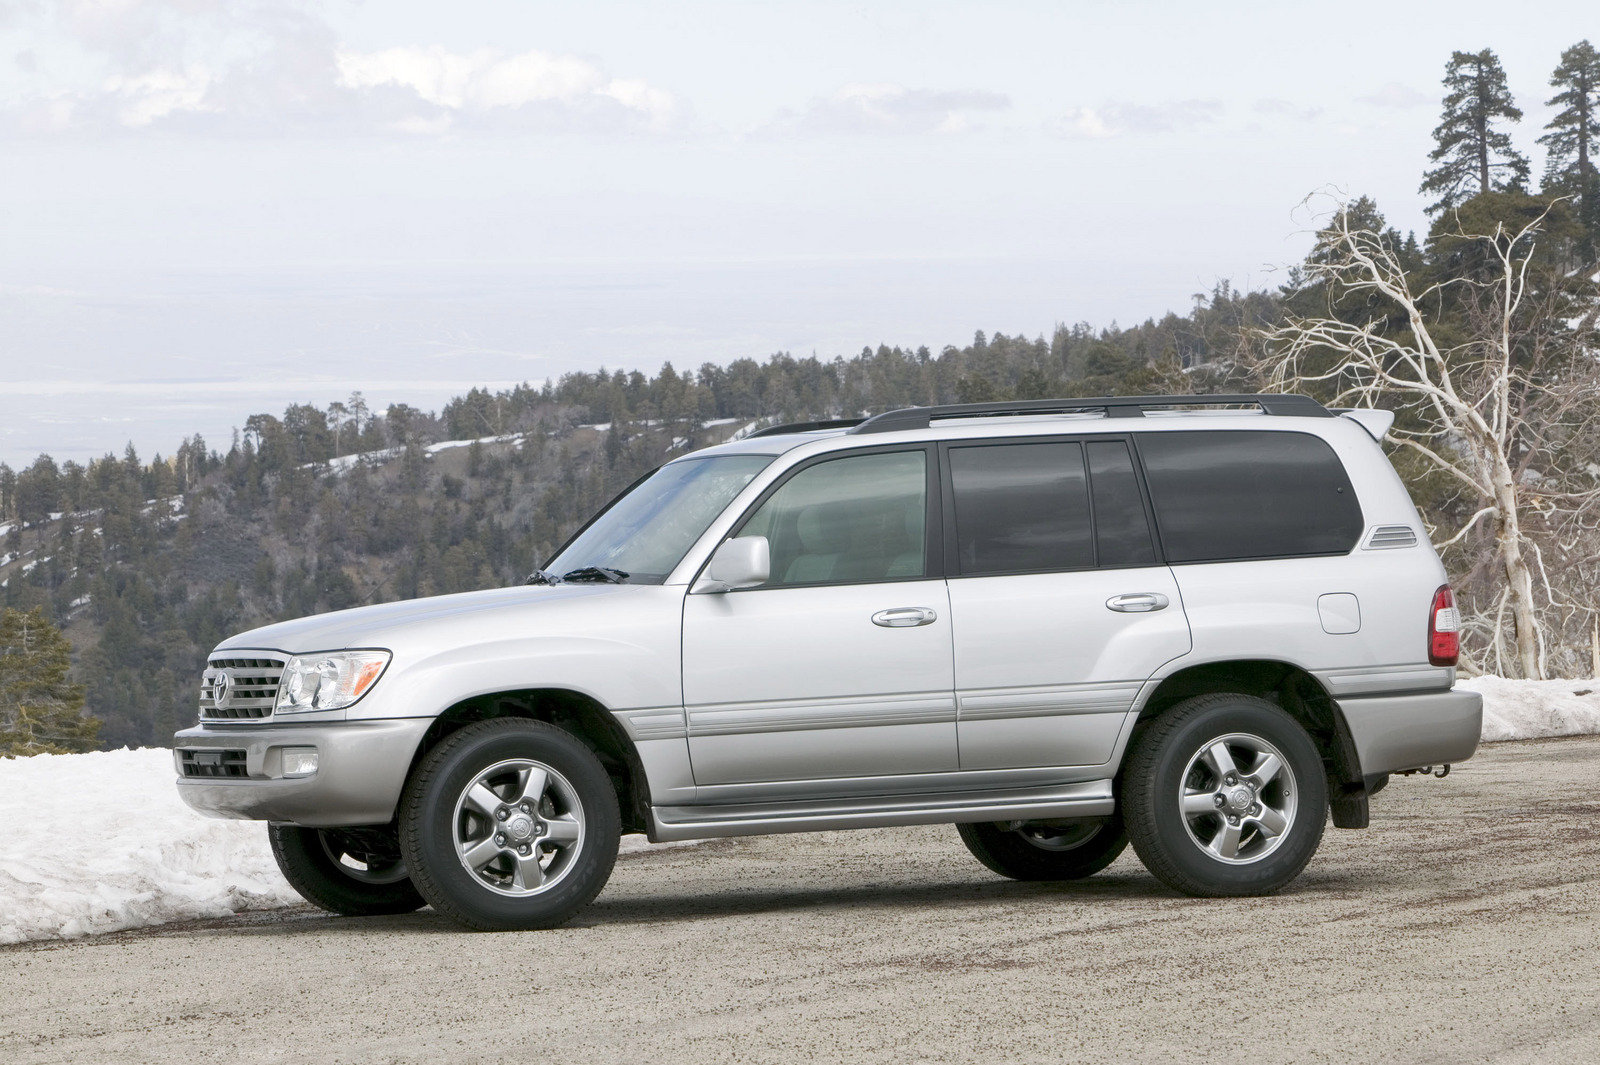 2006 Toyota Land Cruiser - Picture 94385